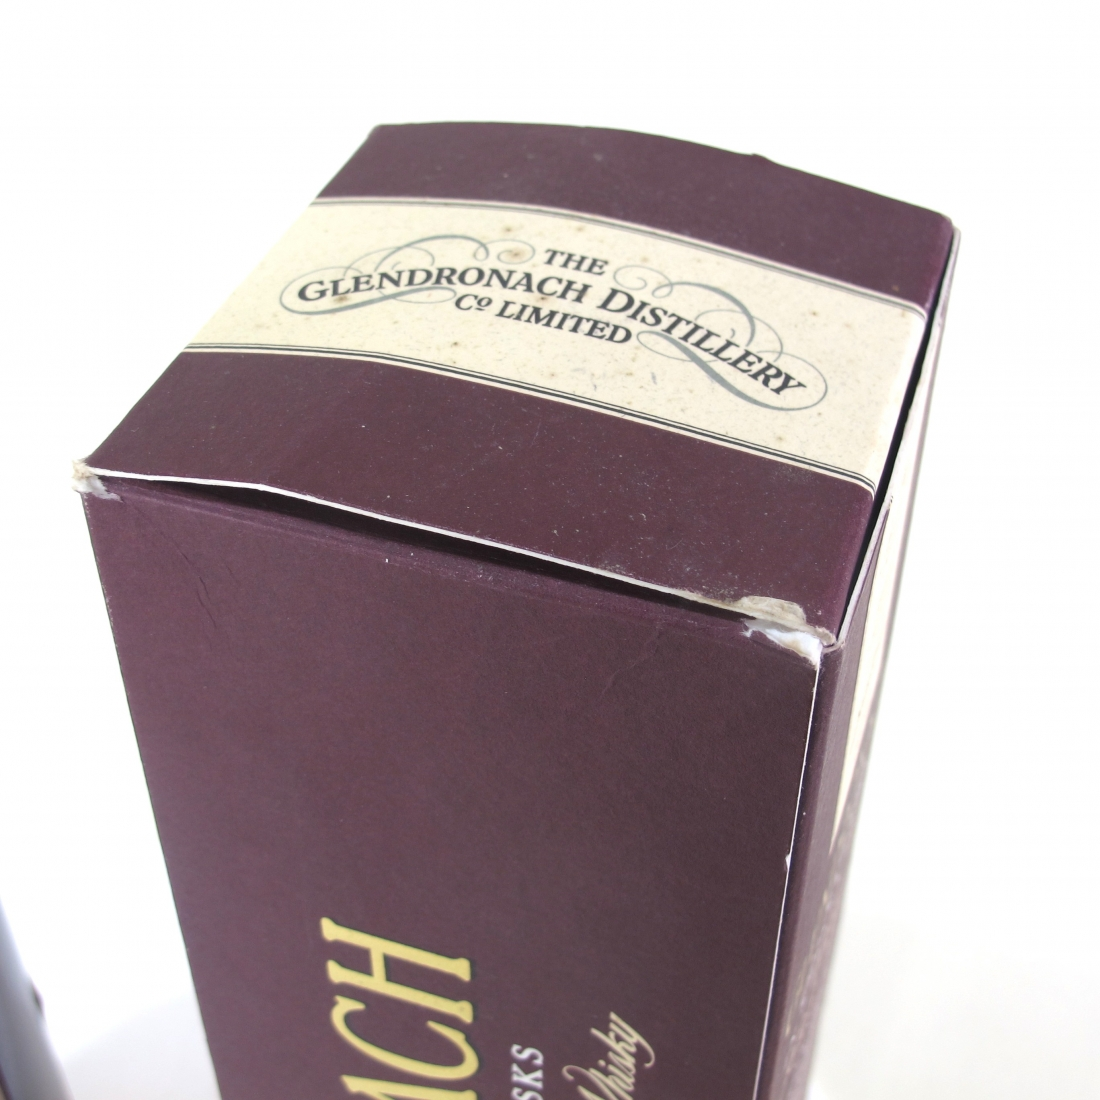 Glendronach 15 Year Old 1 Litre 1990s